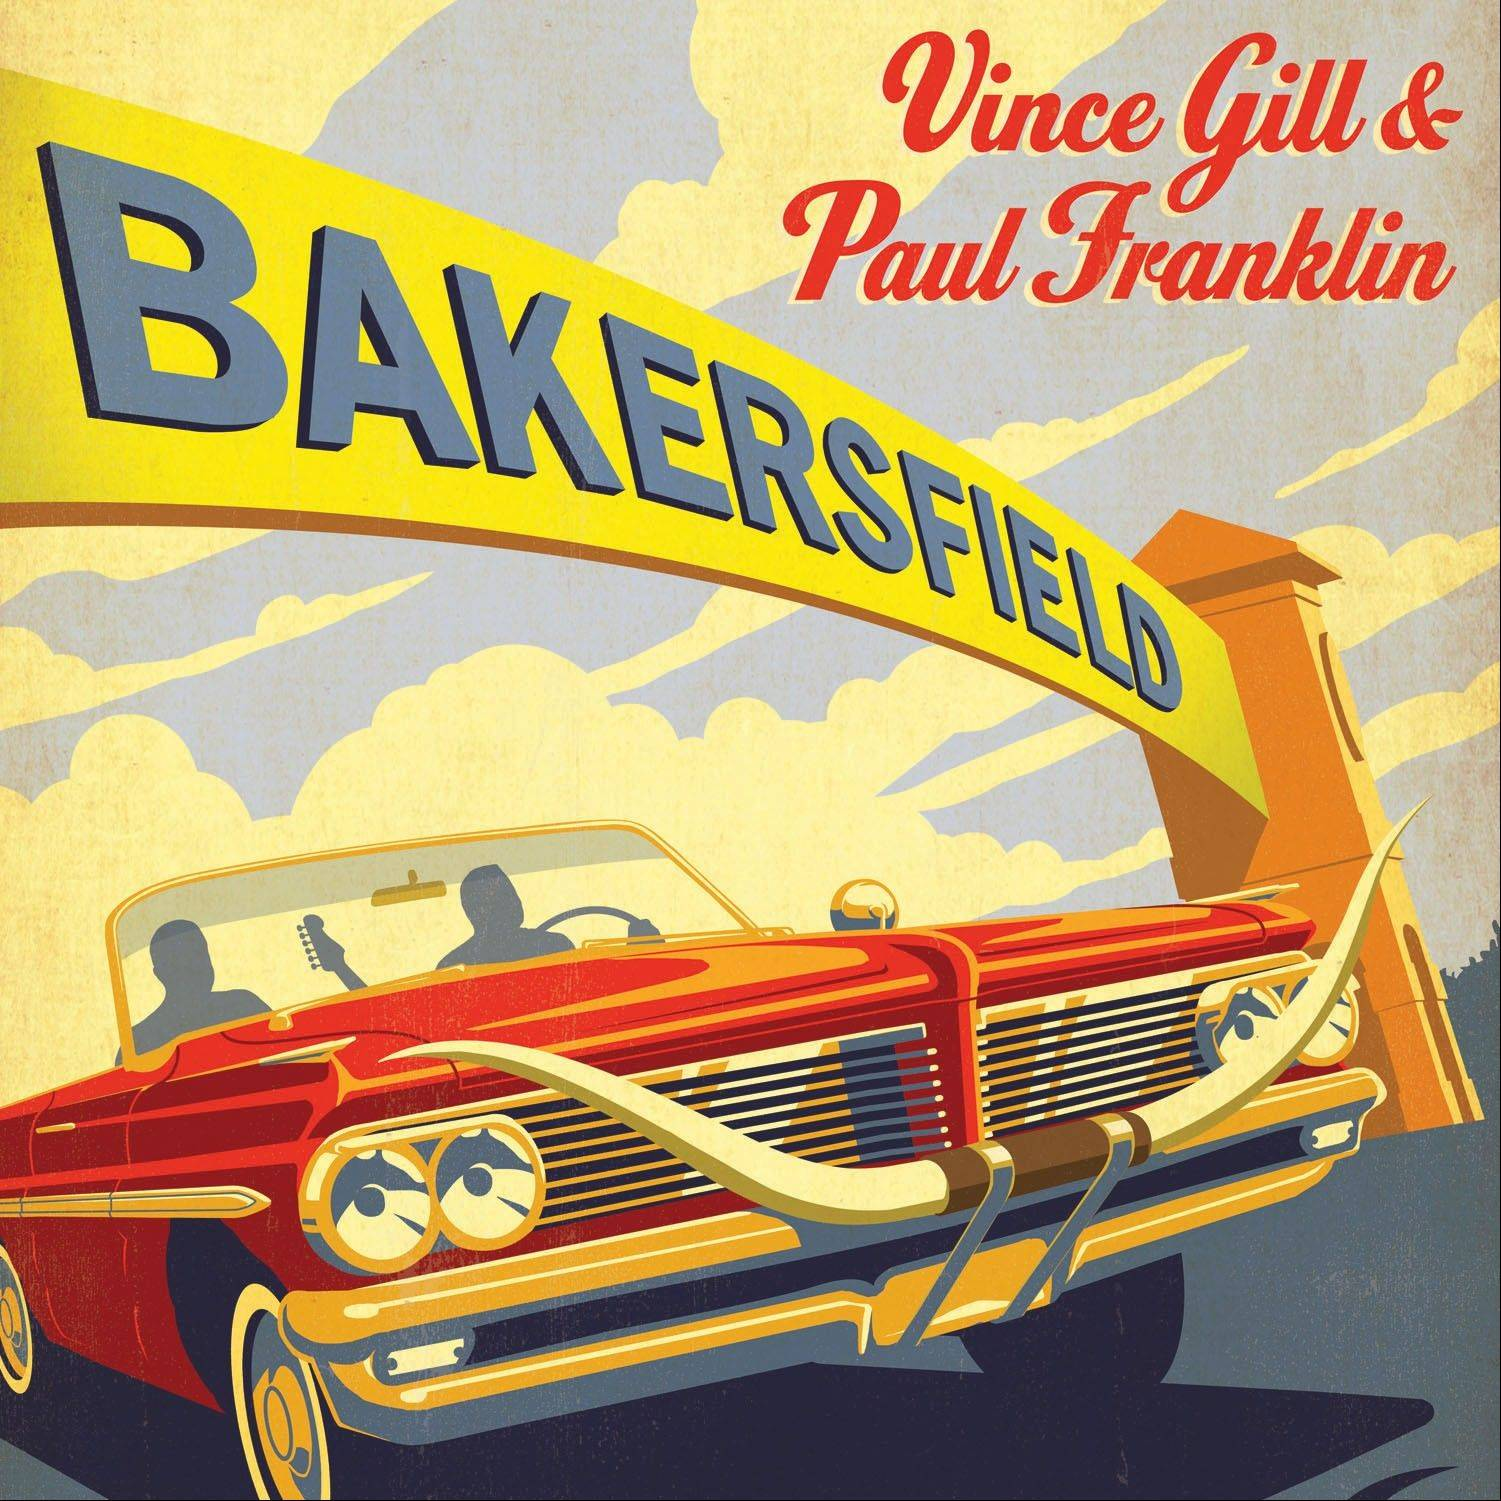 """Bakersfield"" by Vince Gill & Paul Franklin"